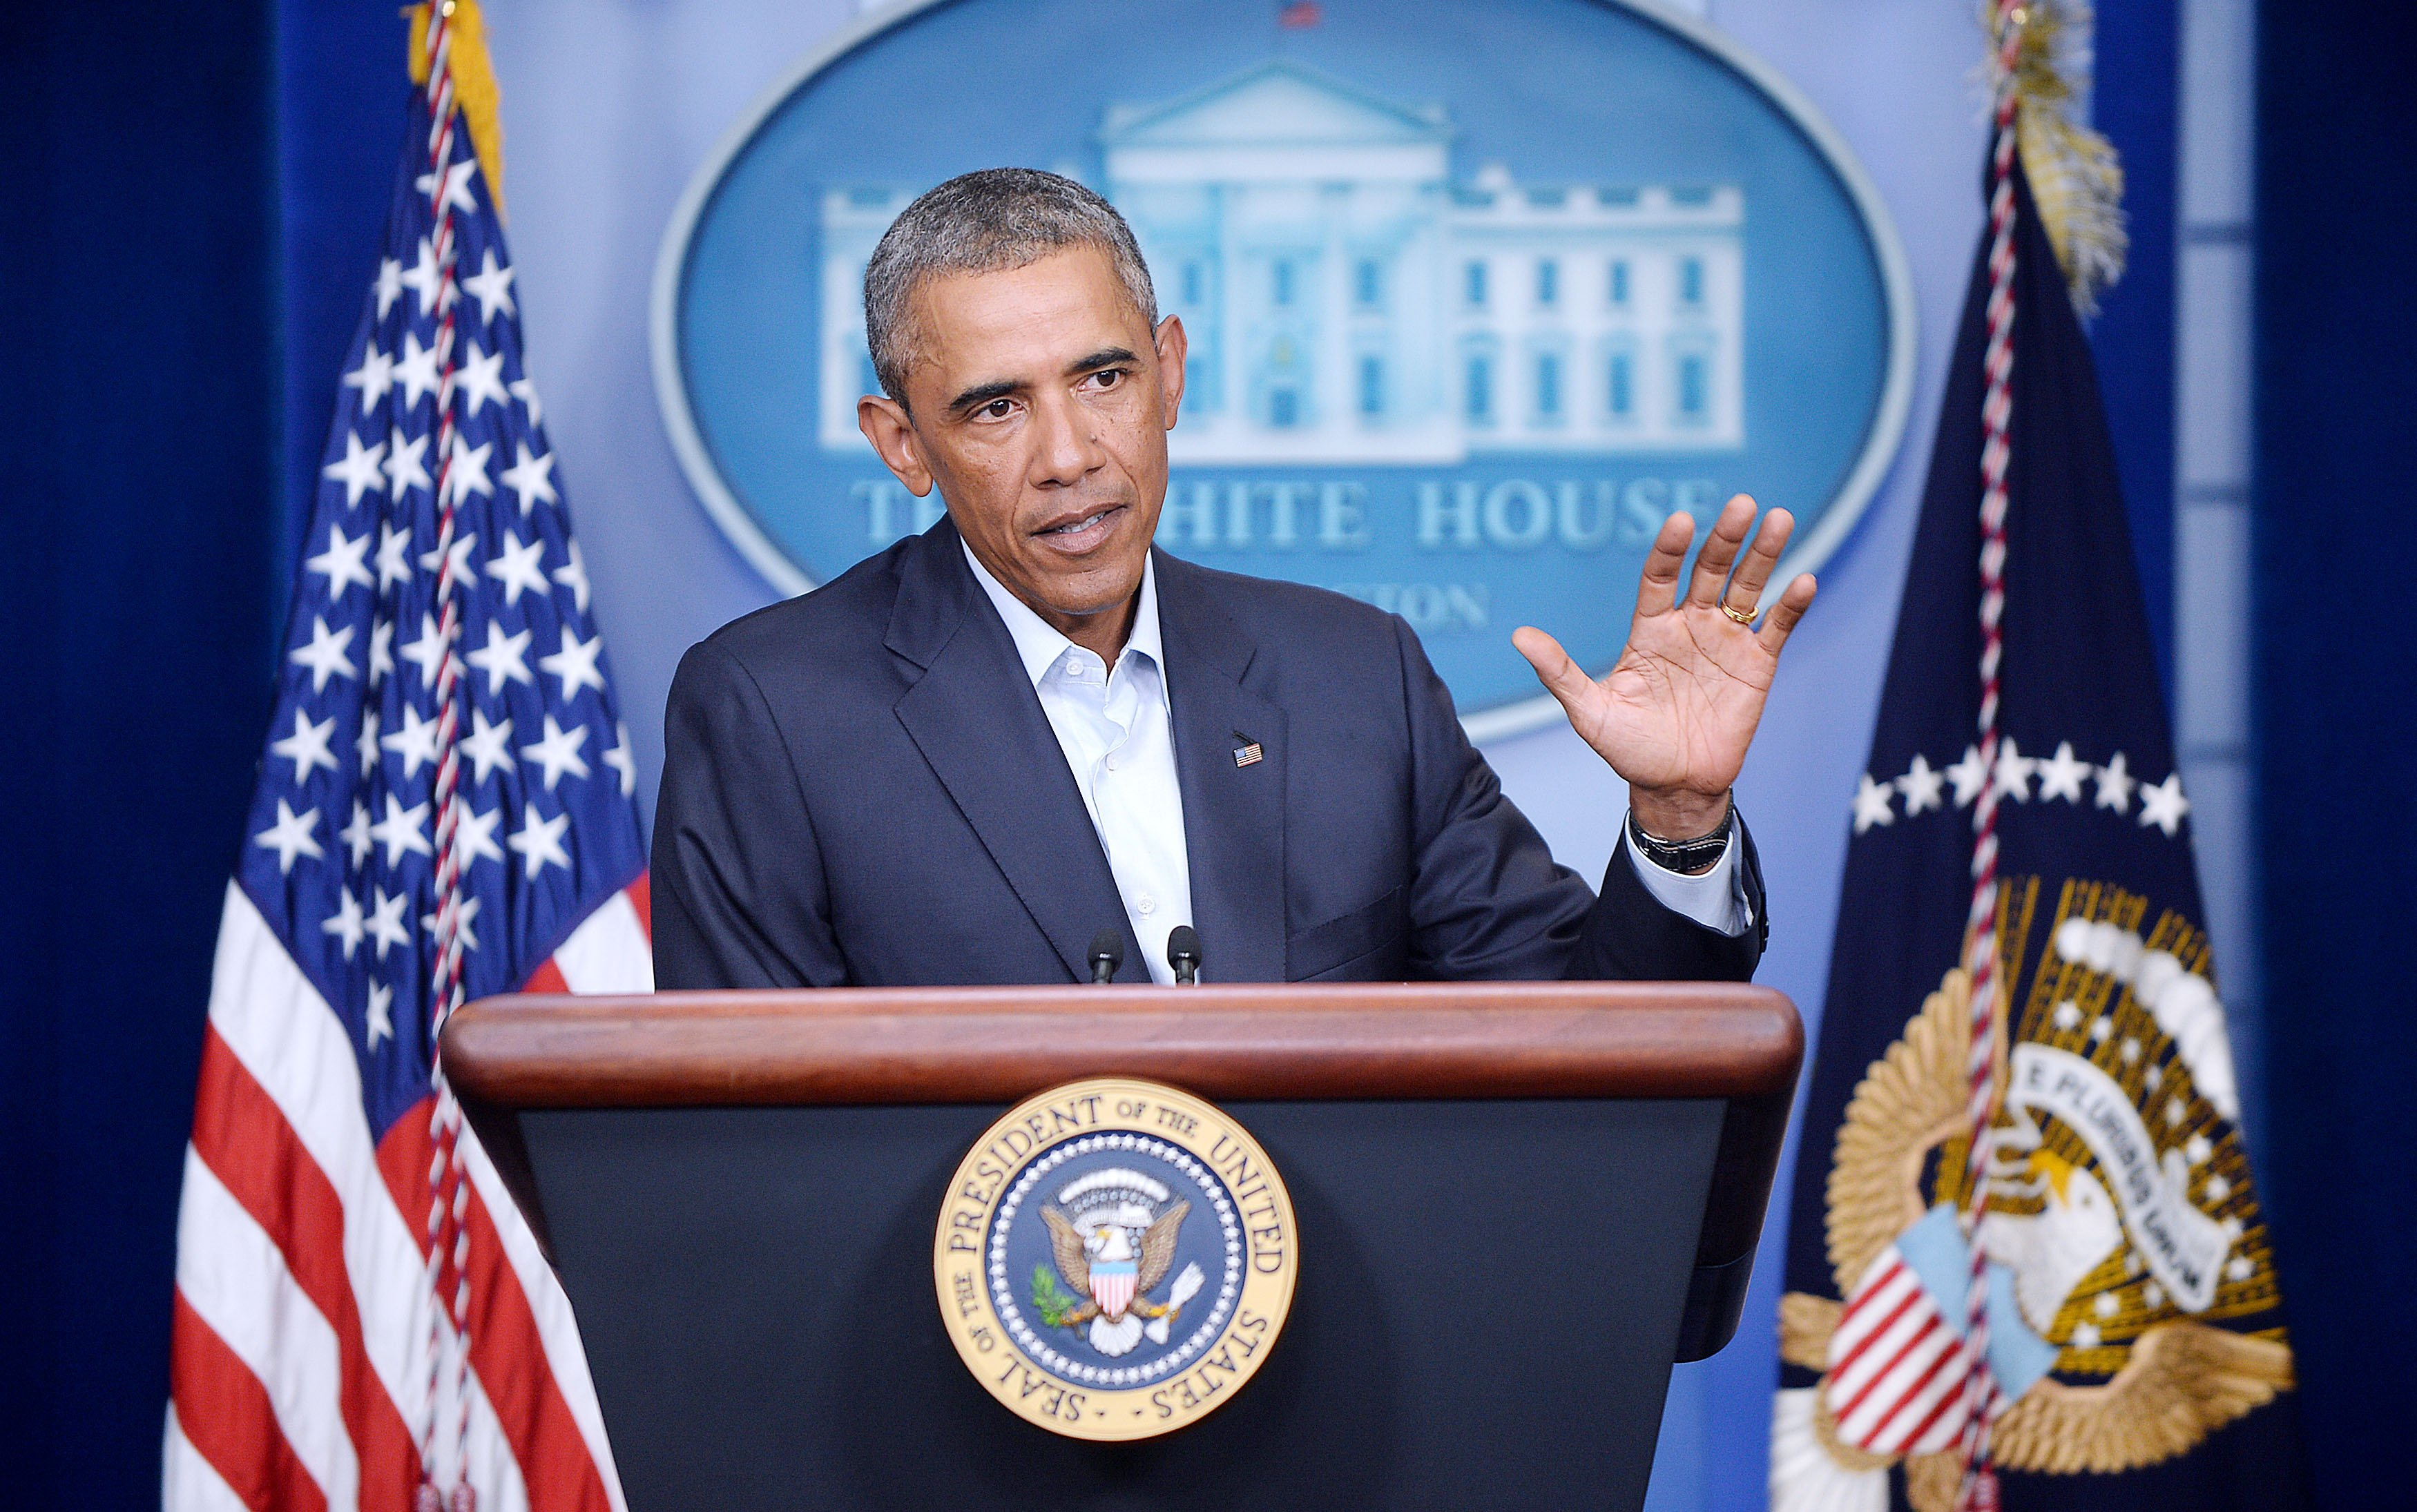 U.S. President Barack Obama delivers a statement to provide an update on Iraq and the situation in Ferguson, Missouri in the Brady Press Briefing Room of the White House August 18, 2014 in Washington, DC>